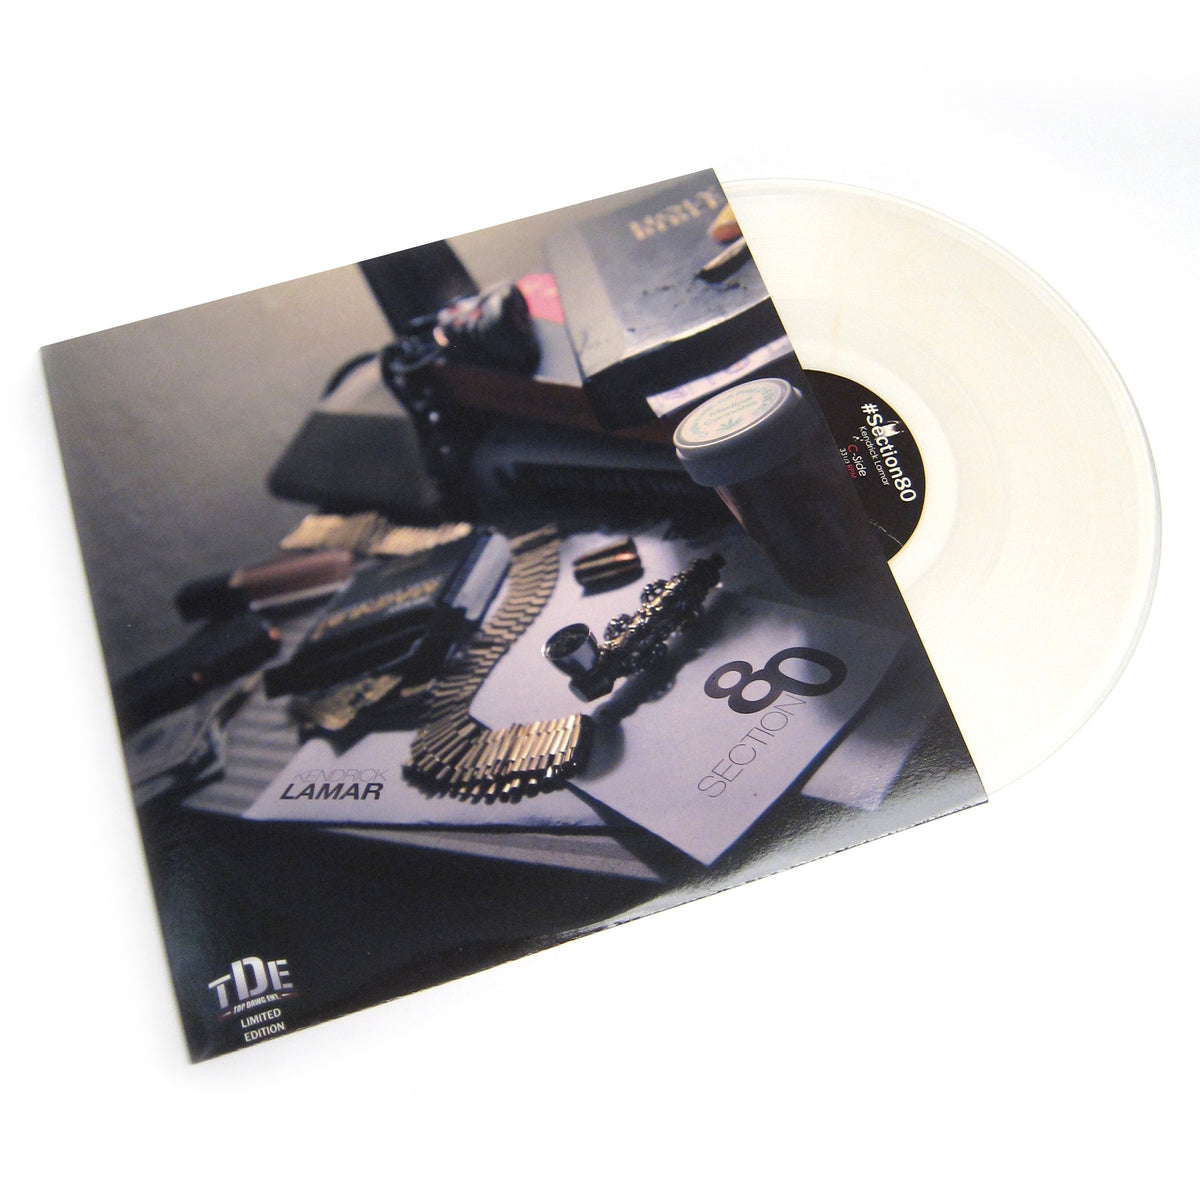 Kendrick Lamar: Section 80 Vinyl LP